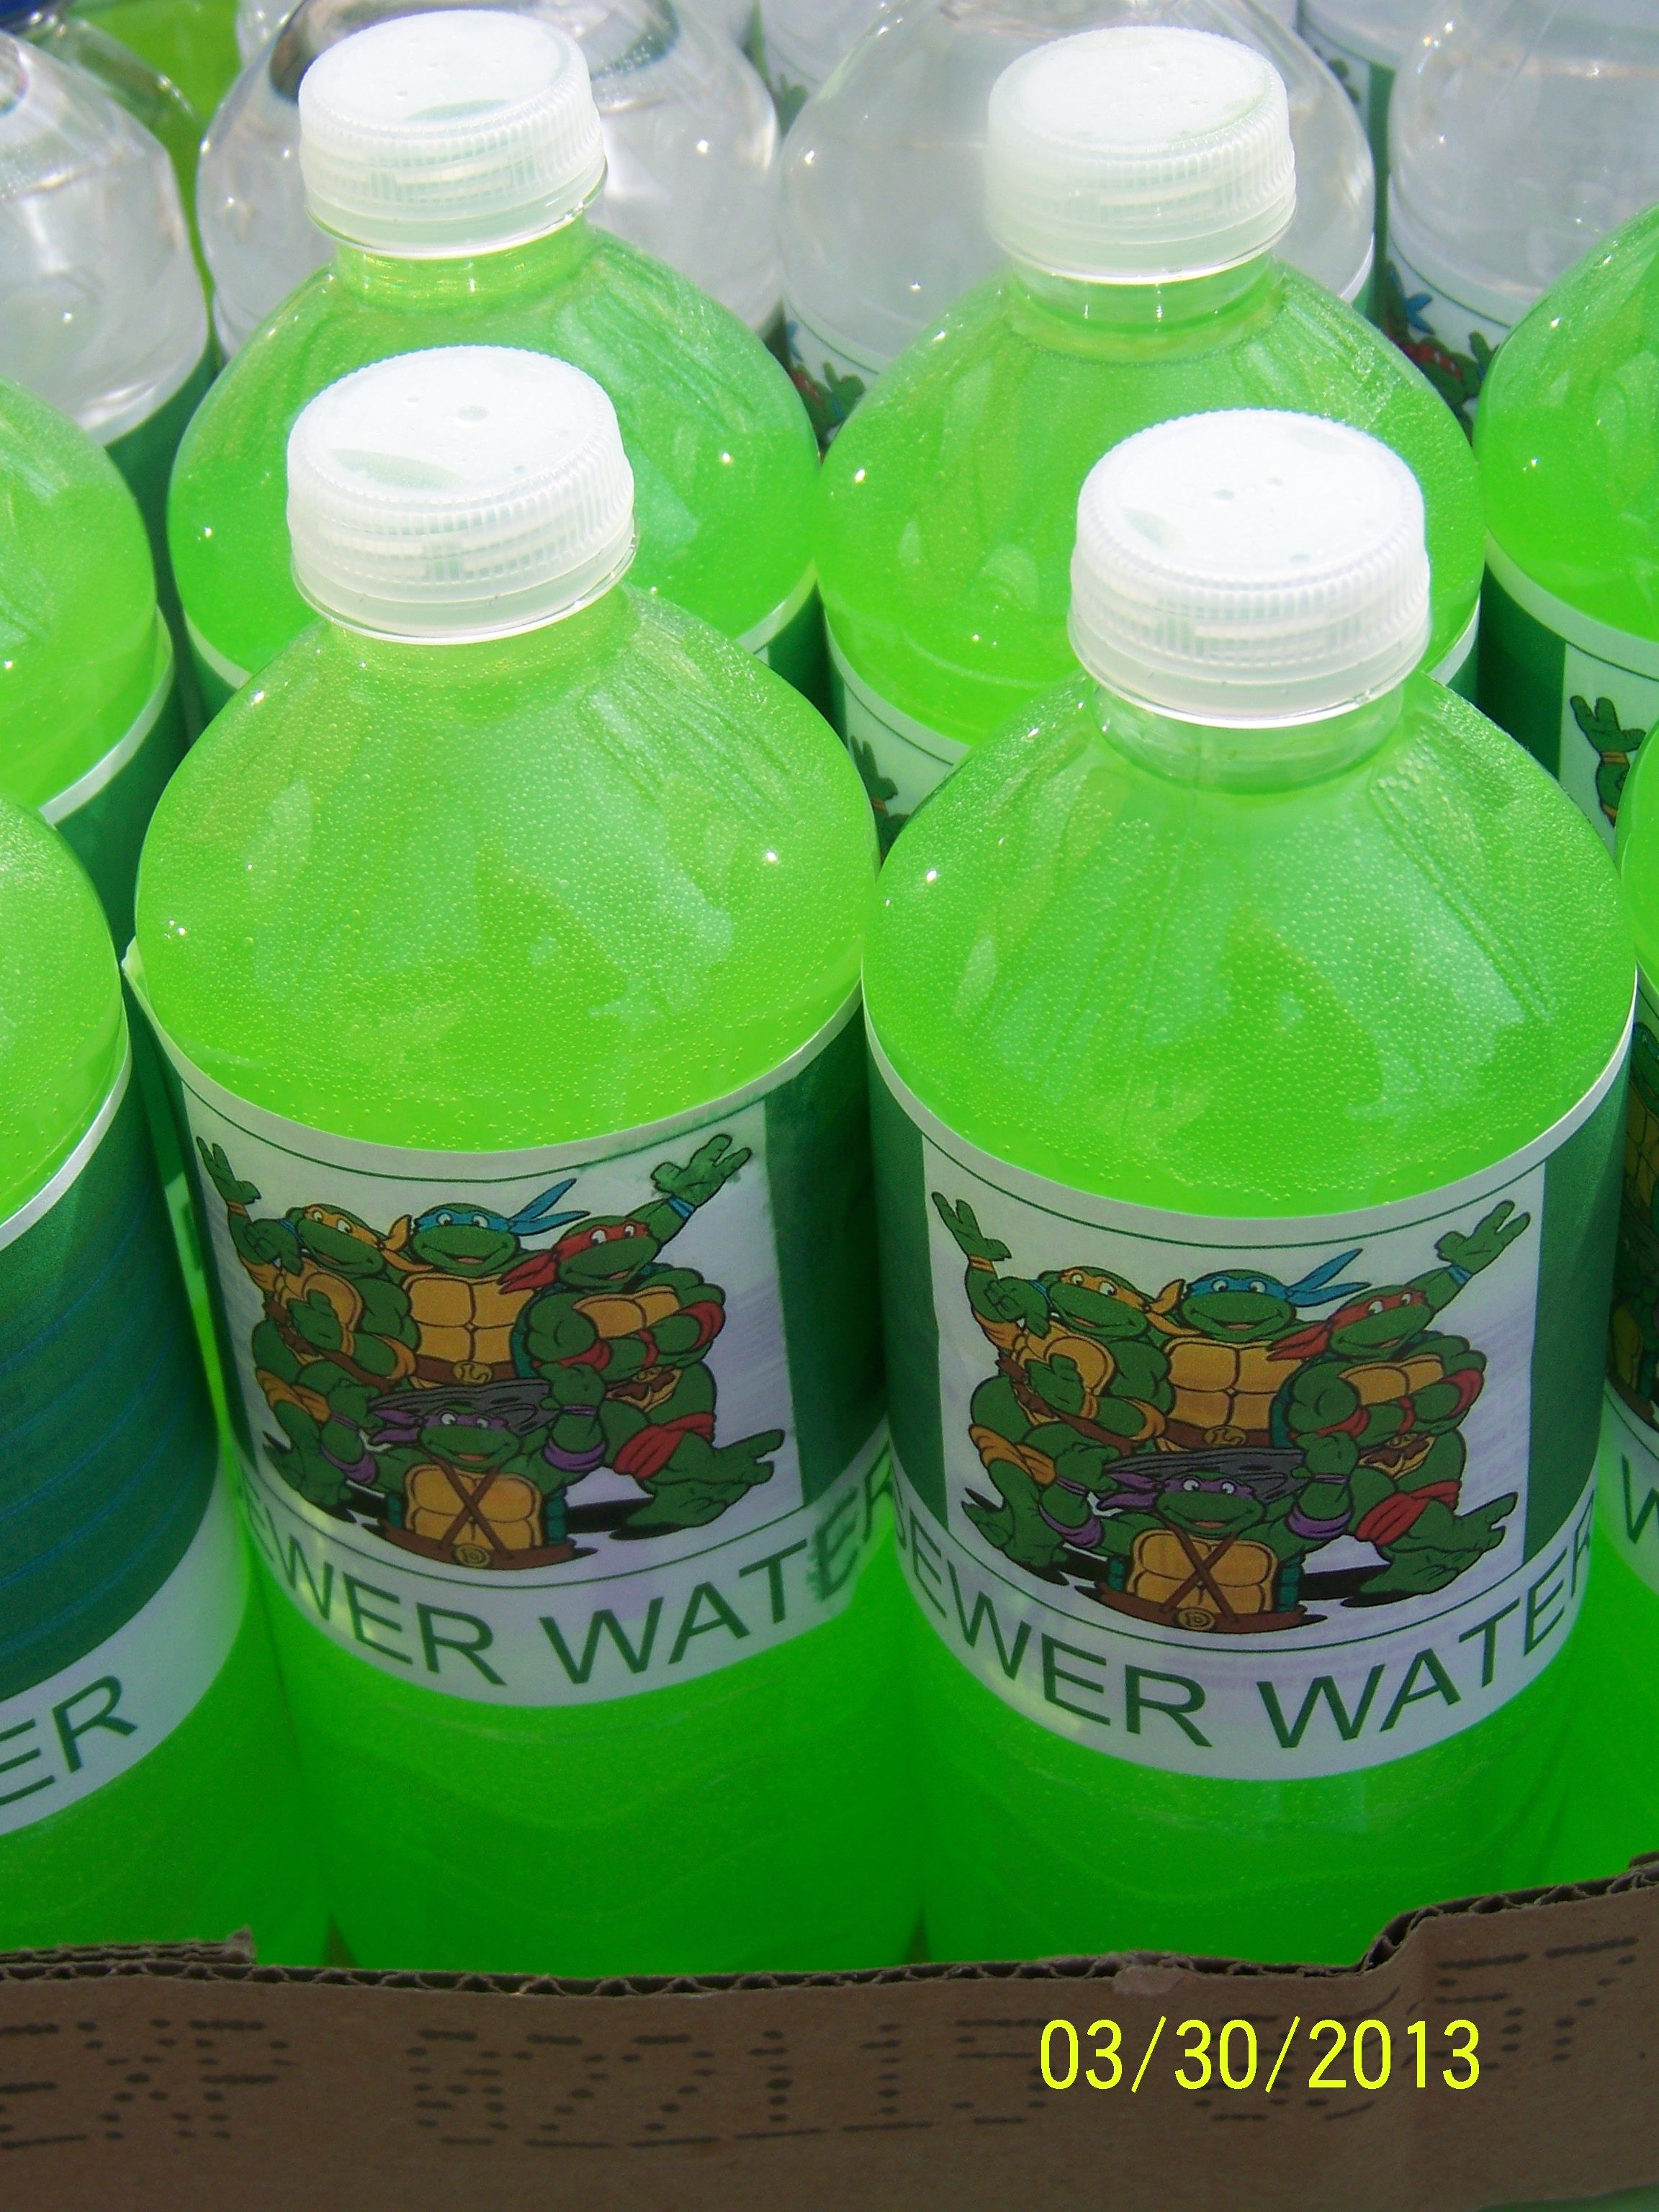 He Wants Sewer Water Also Known As Green Kool Aid I Think Put In A Punch Bowl Type Style Tmnt Party Ninja Turtle Party Turtle Party